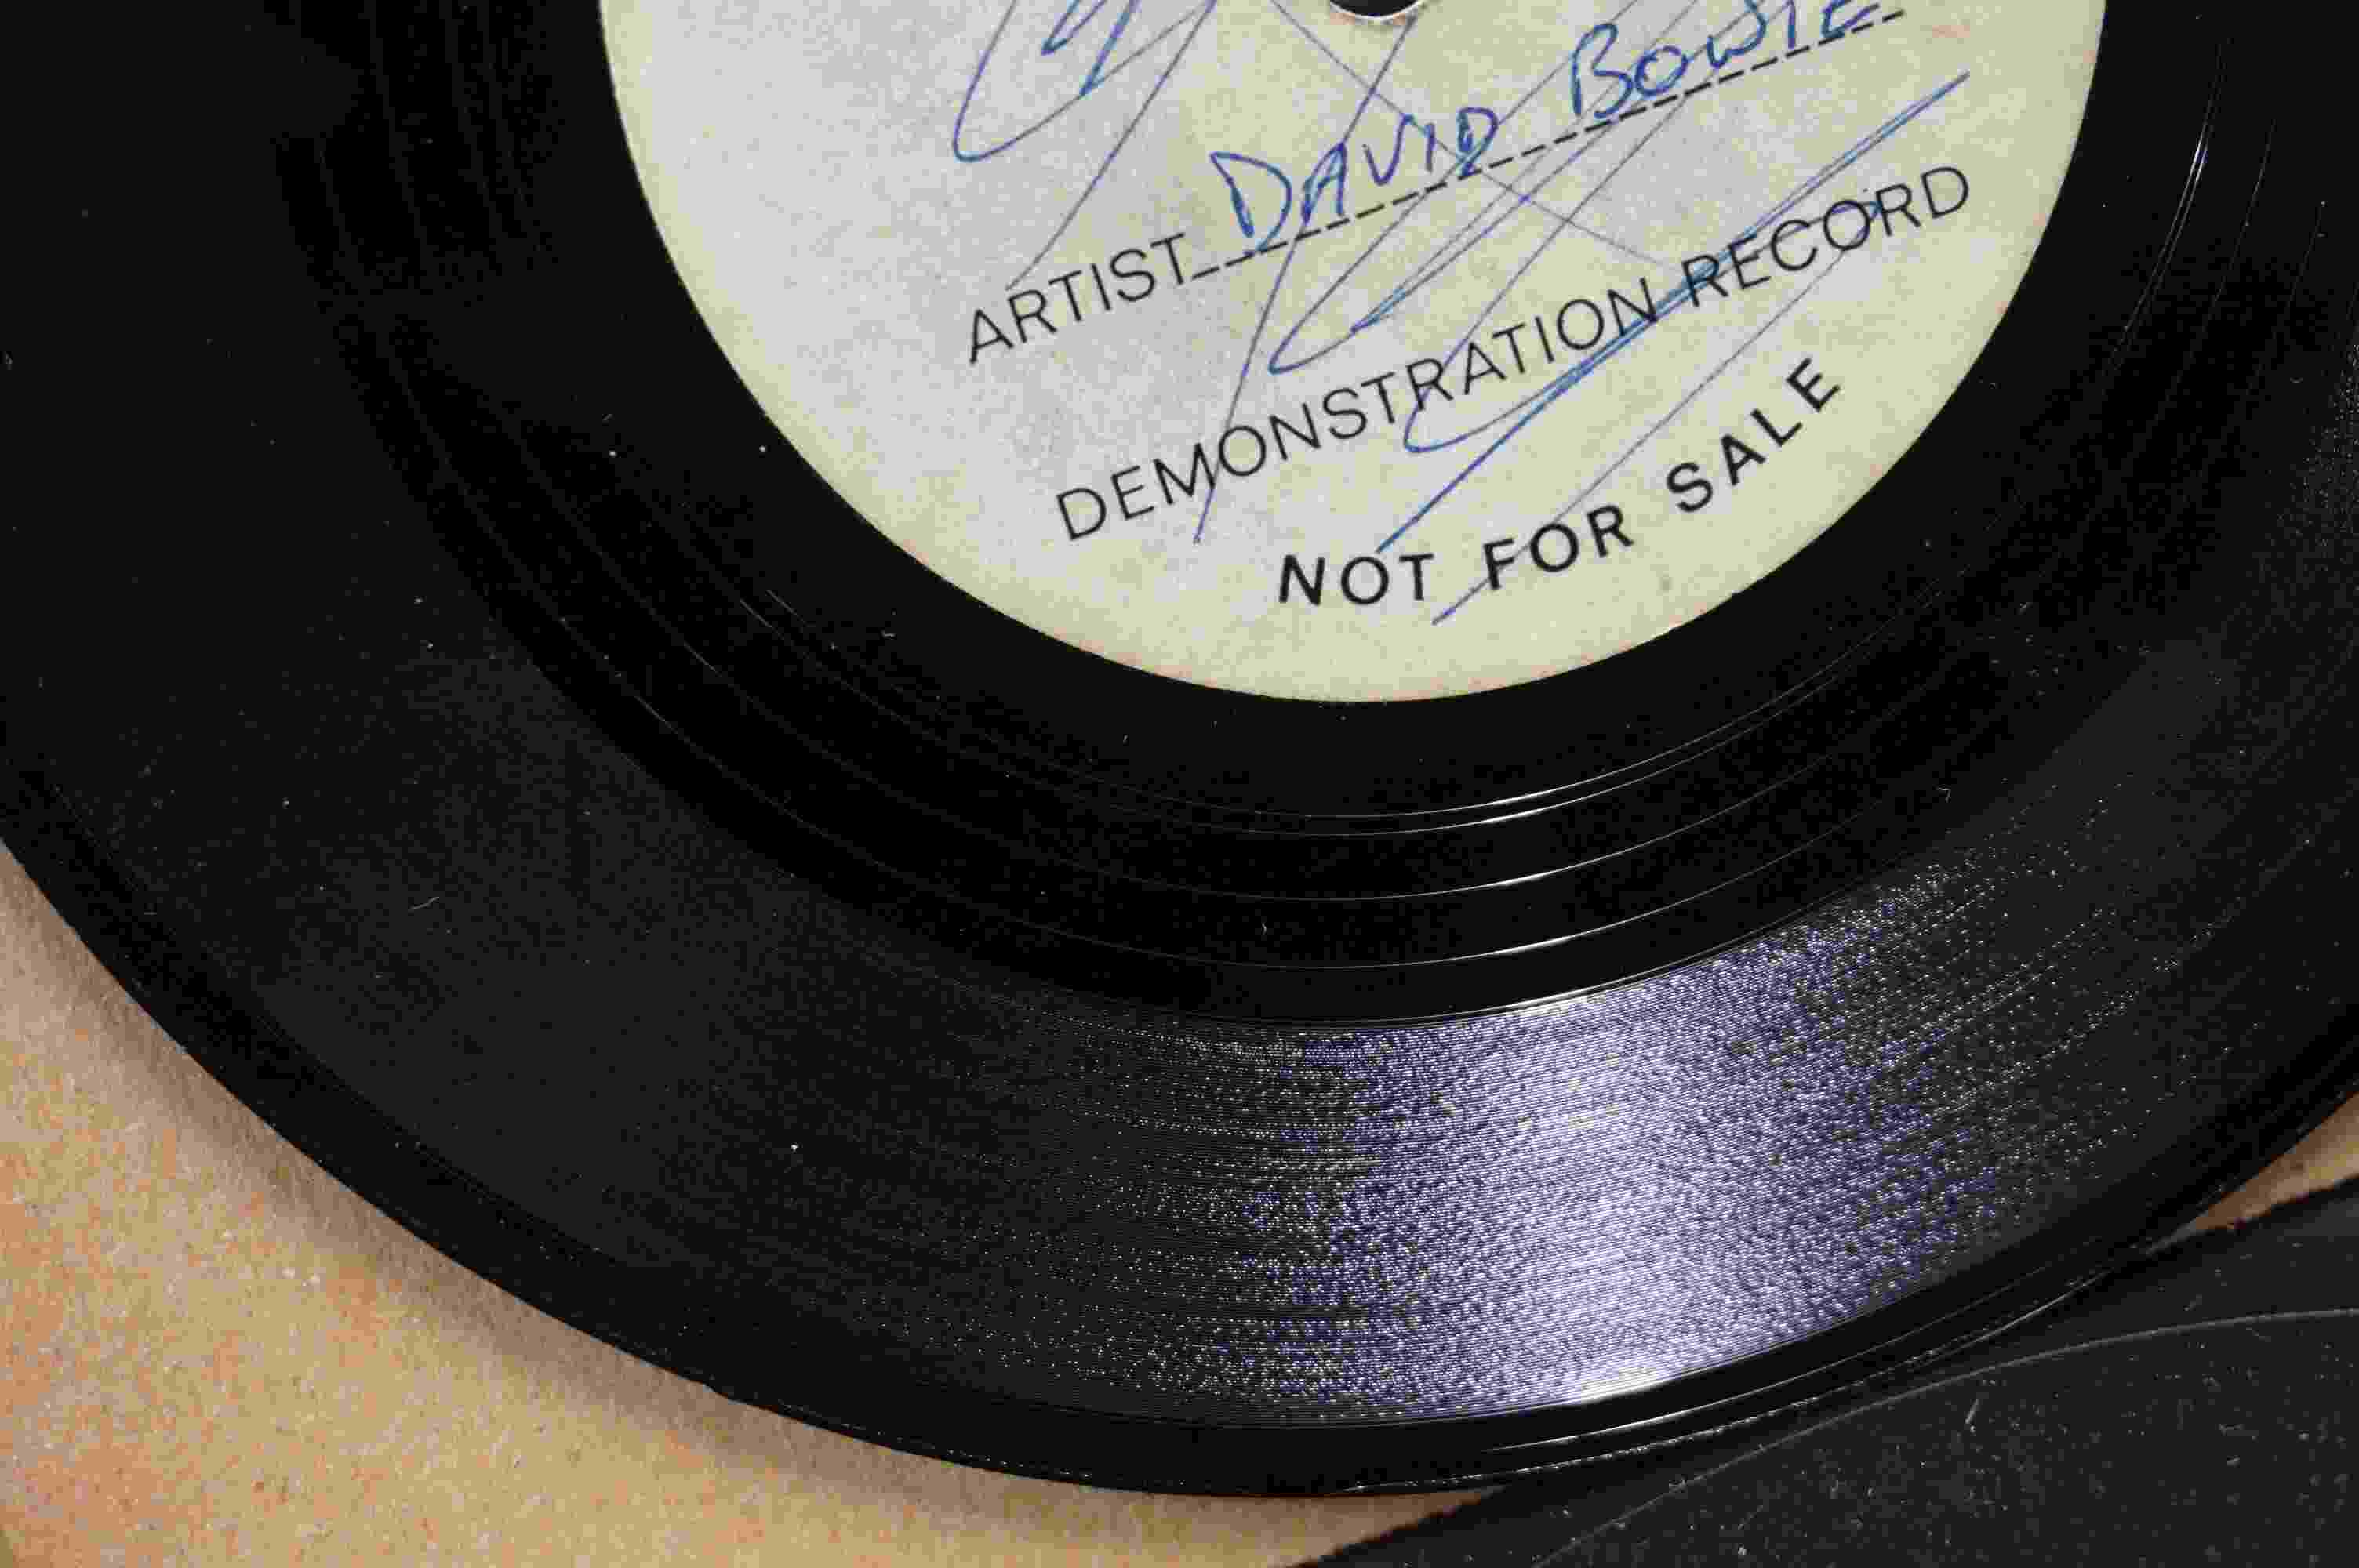 Vinyl - David Bowie / Ace Kefford - A two sided acetate featuring a previously unknown & unheard - Image 3 of 9